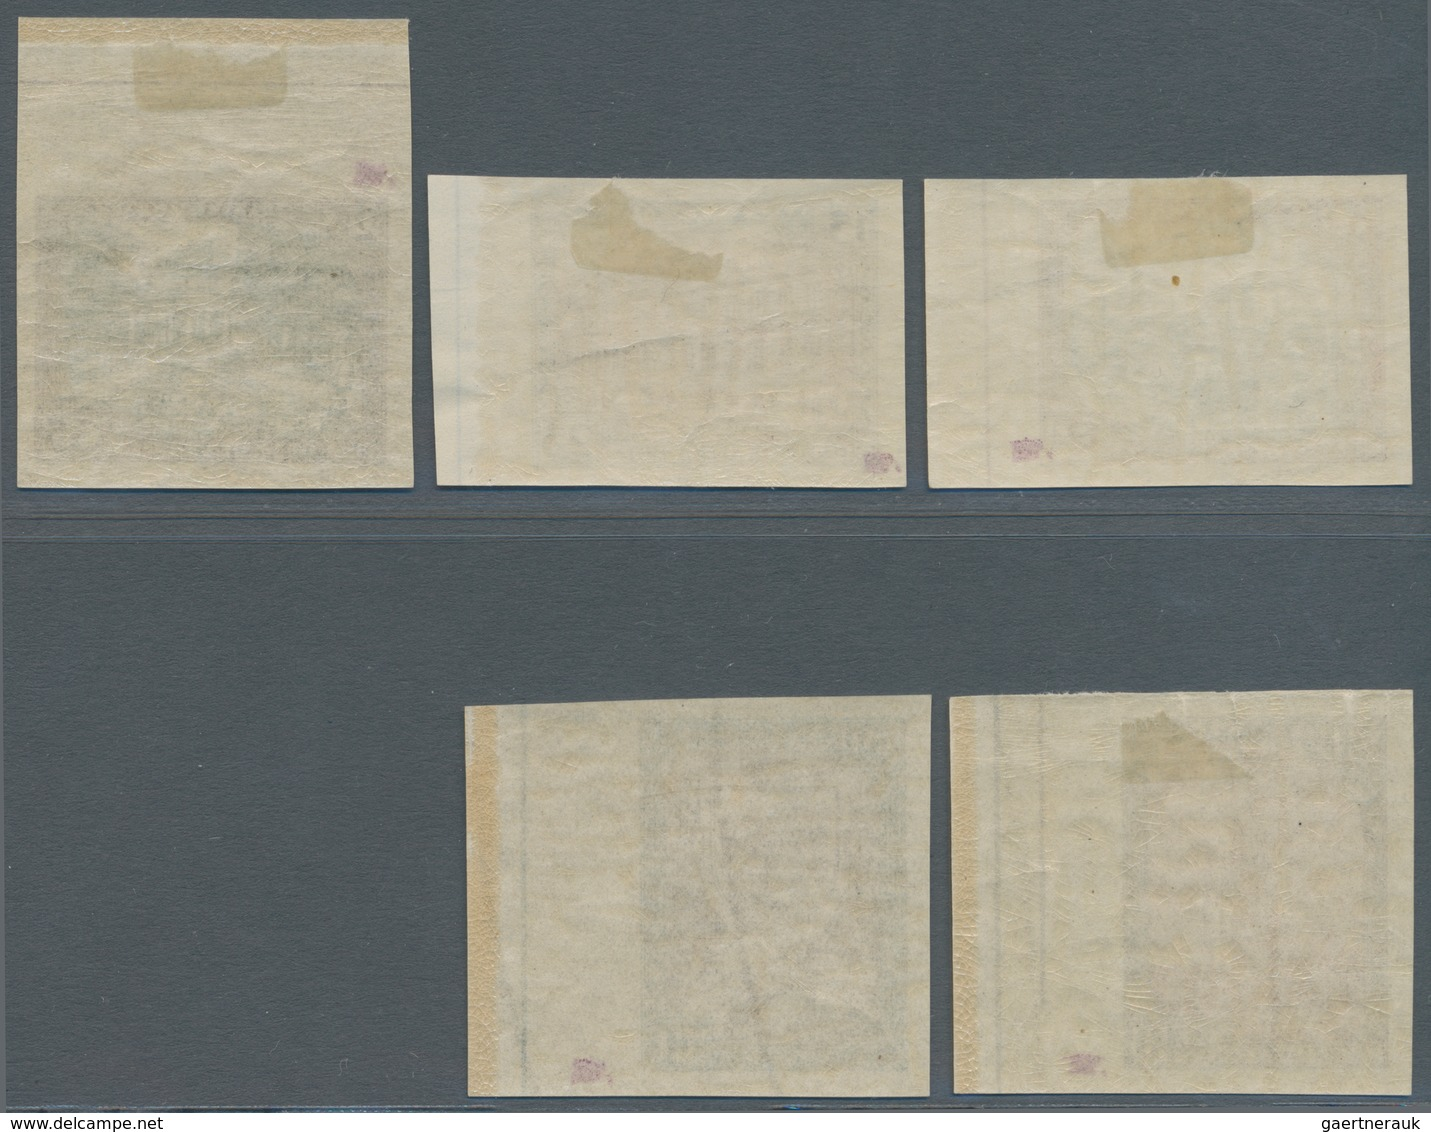 Lettland: 1925, 300 Years City Of LIBAU Imperforated Set, All With Large Margins. Traces Of Hinge On - Lettland